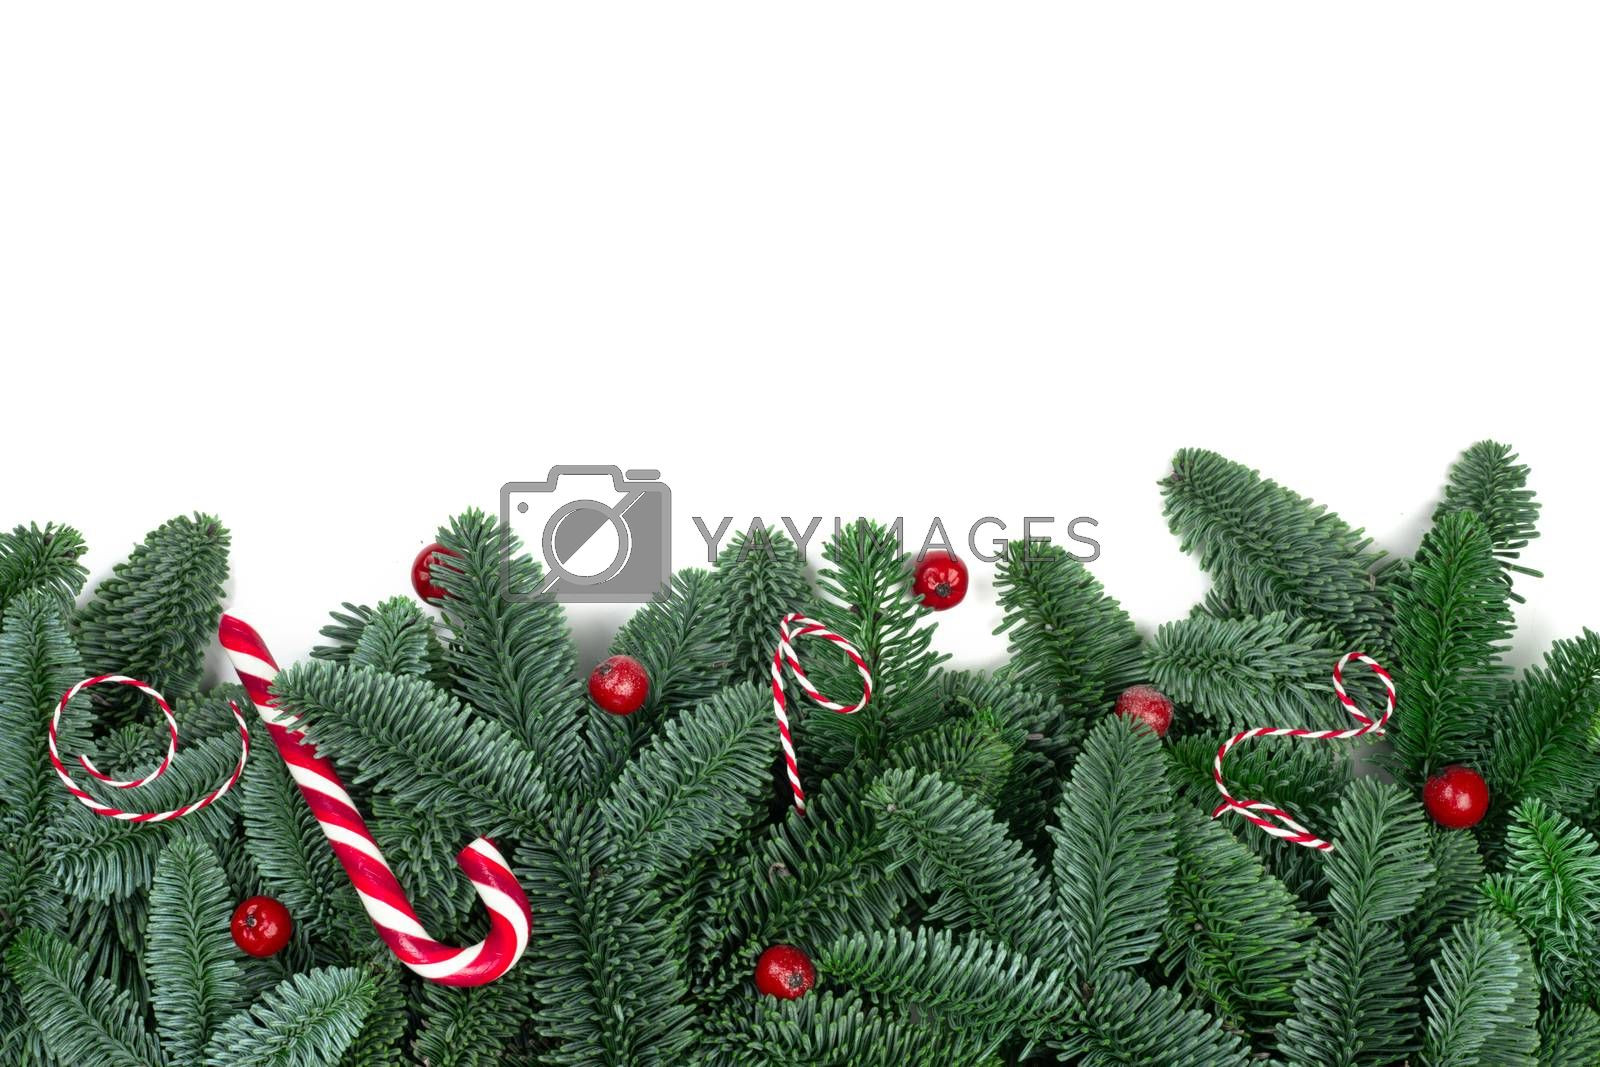 Christmas design boder frame greeting card of noble fir tree branches candy cane and berries isolated on white background